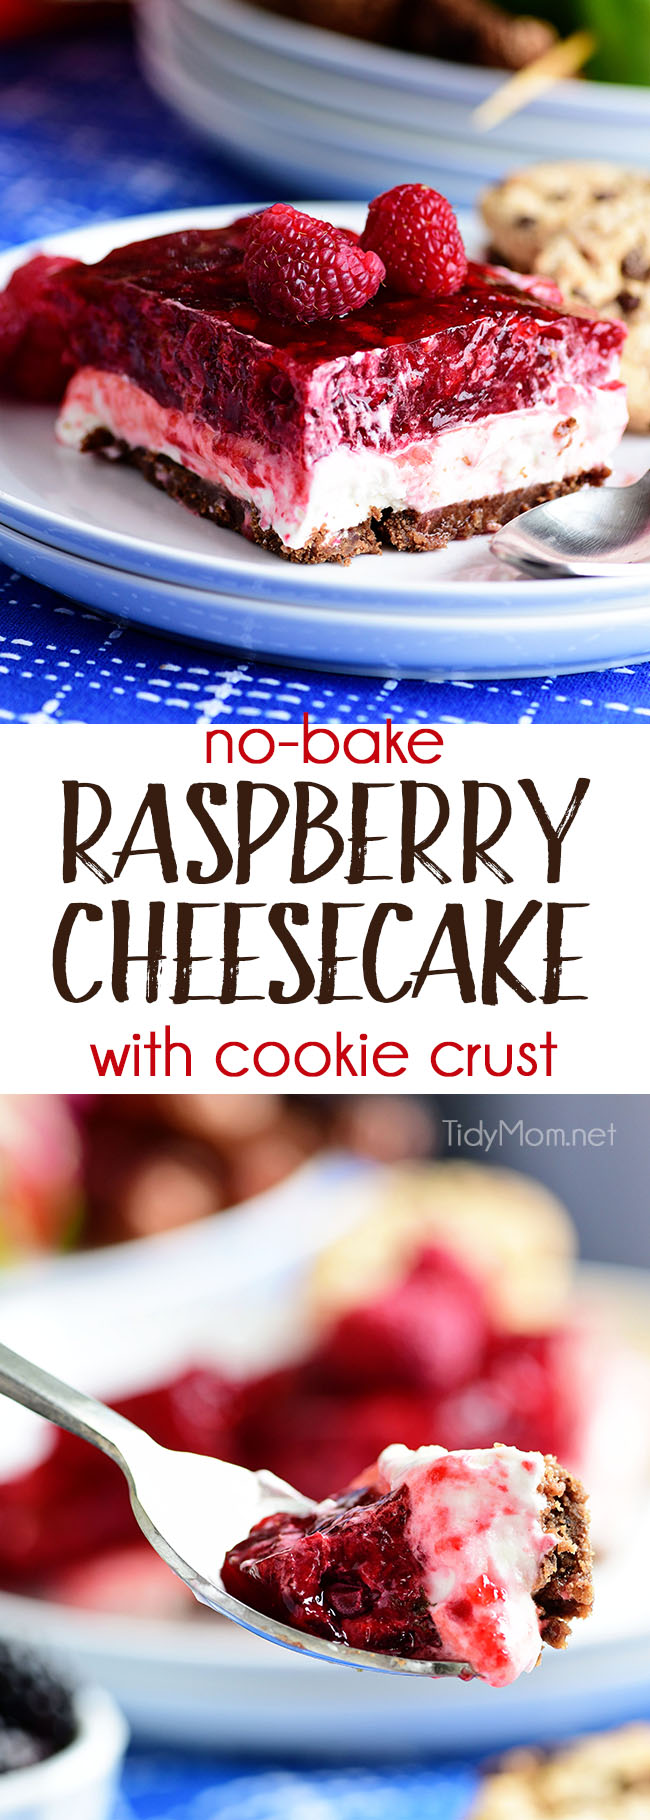 No-Bake Raspberry Cheesecake with Cookie Crust. Perfect make-ahead dessert fora summer BBQ or potluck Print the full recipe at TidyMom.net #dessert #raspberry #nobake #summer #recipe